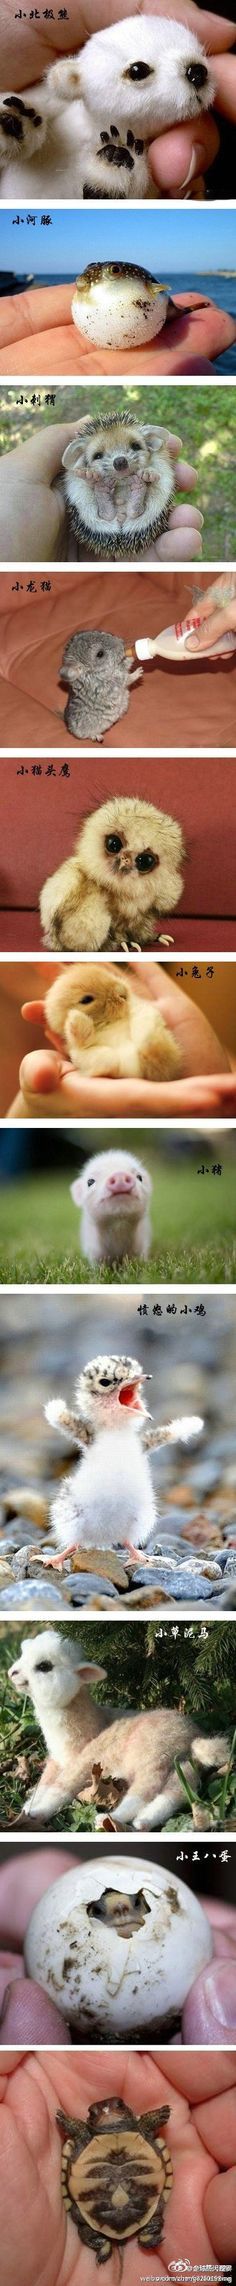 ♥ aaawwwww the cutest thing in the world... baby animals